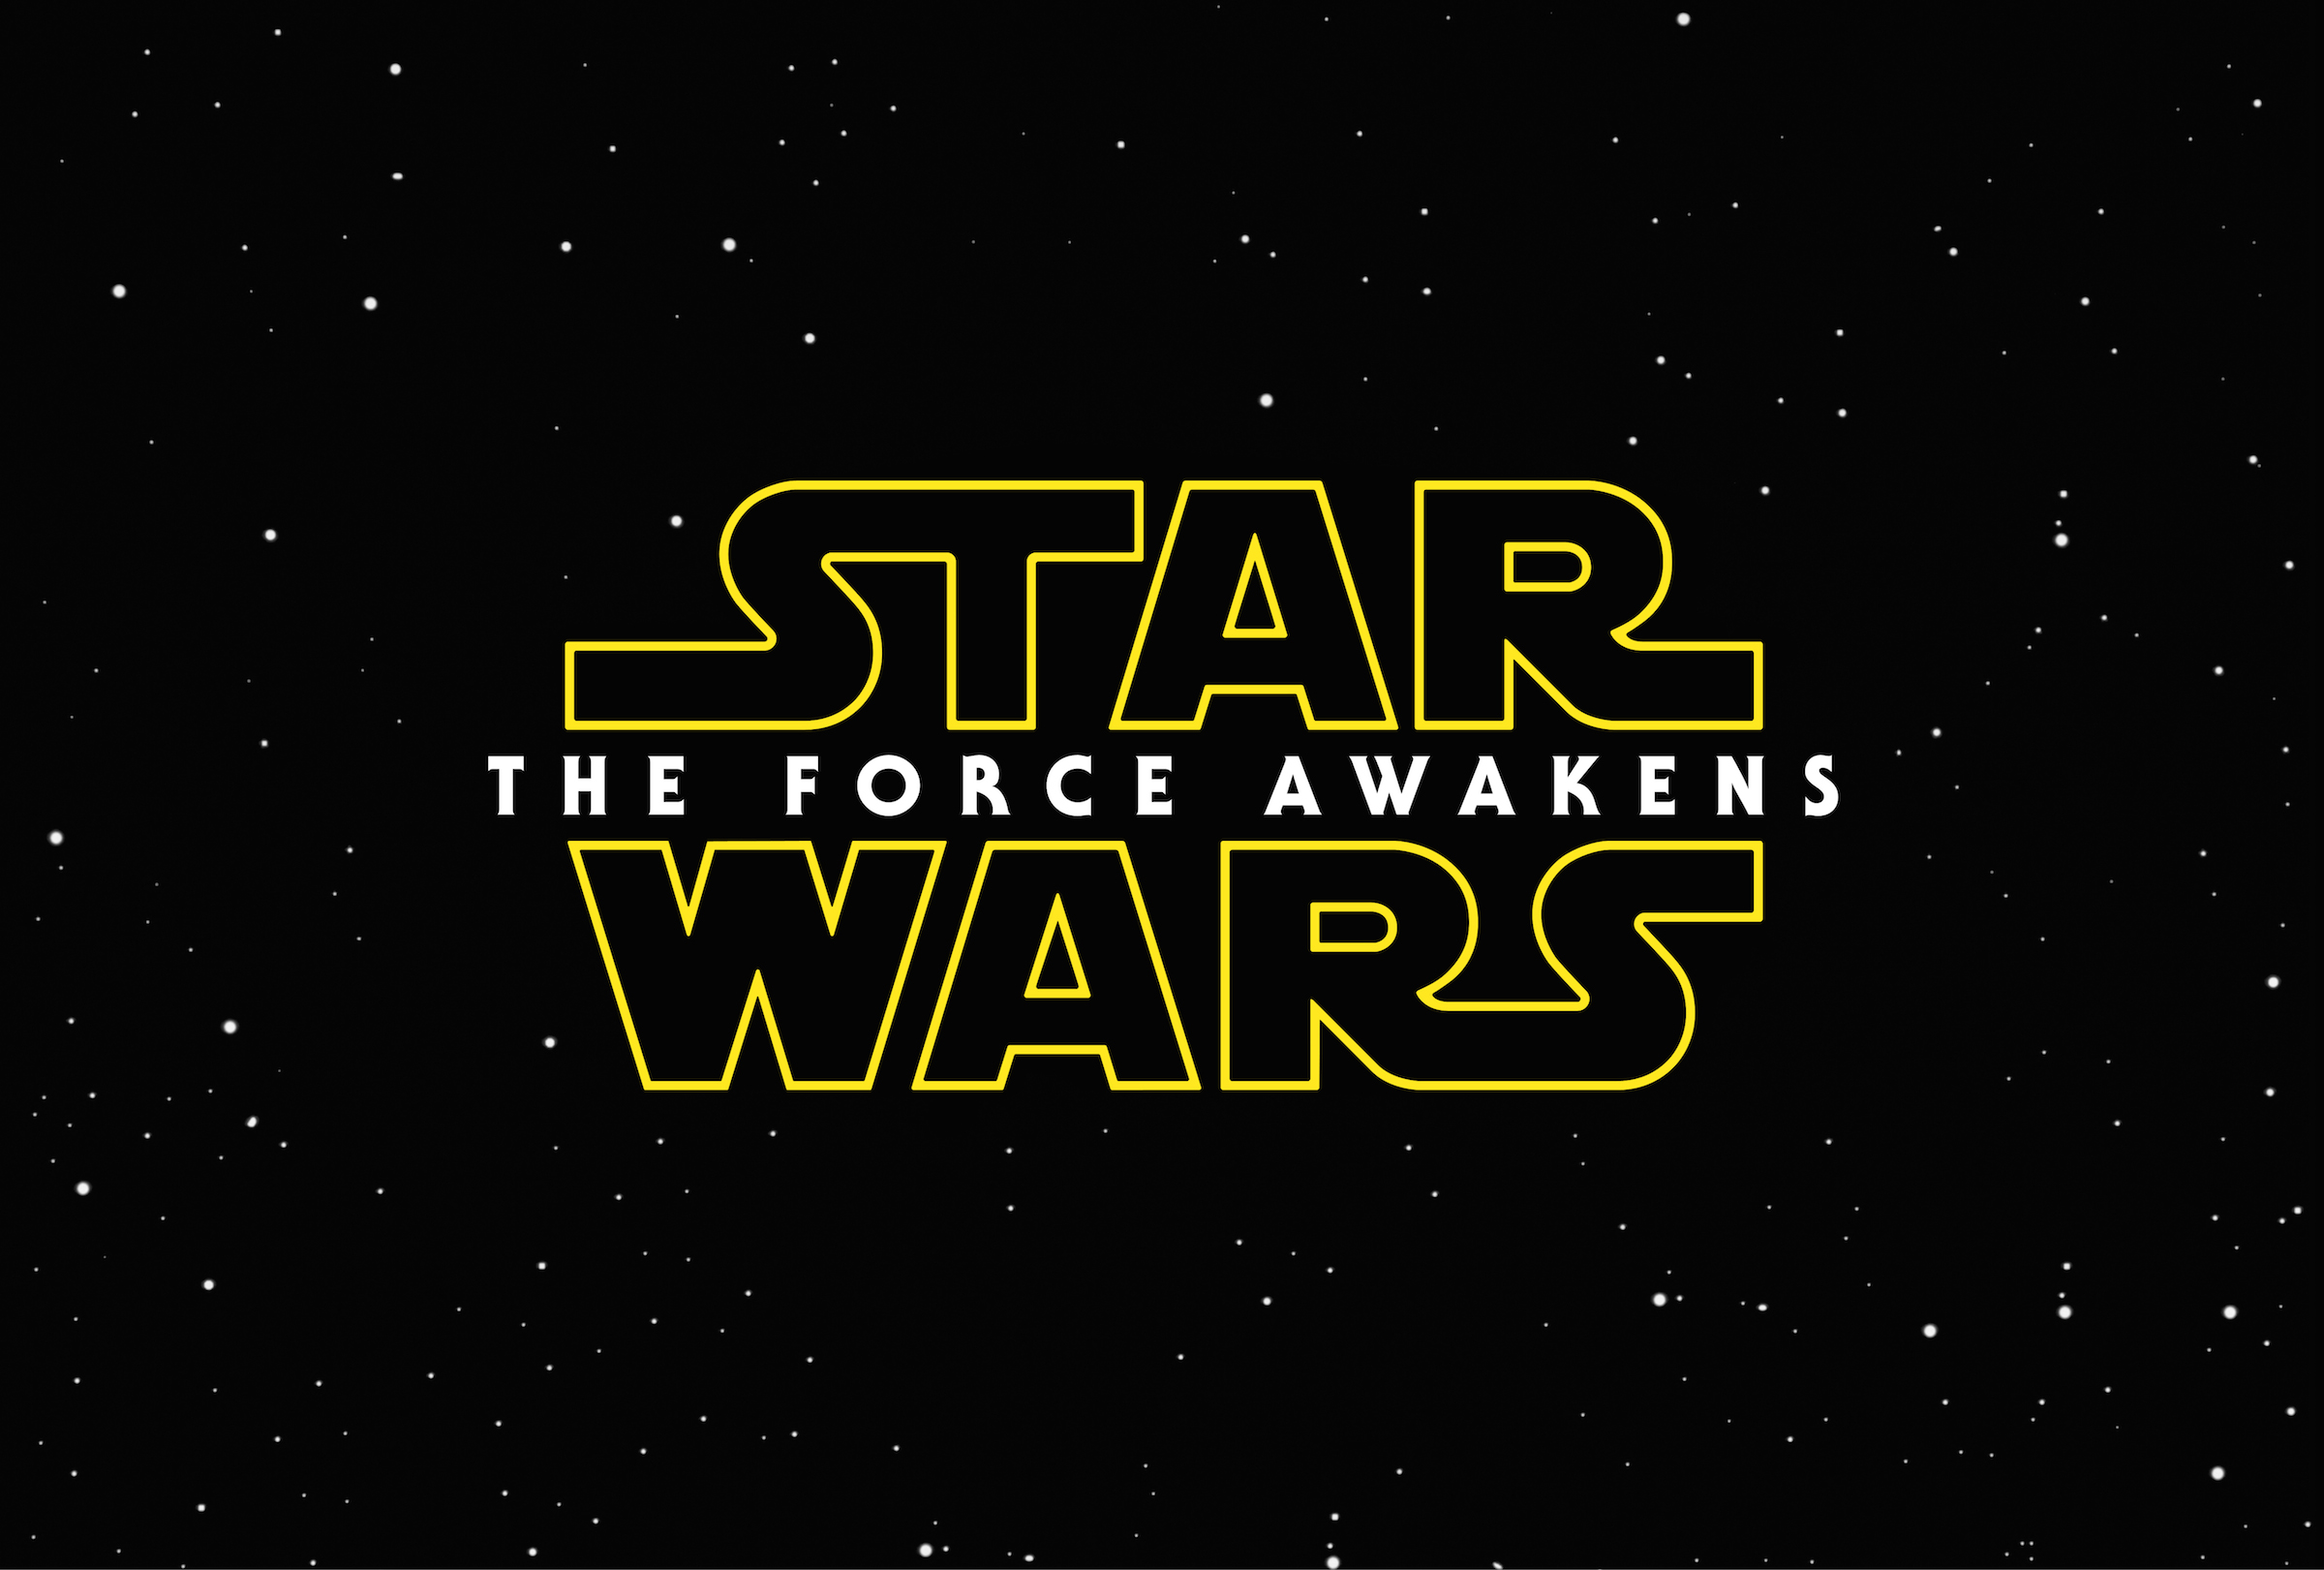 Cancer Patient Hopes To See Star Wars: The Force Awakens Before He Dies